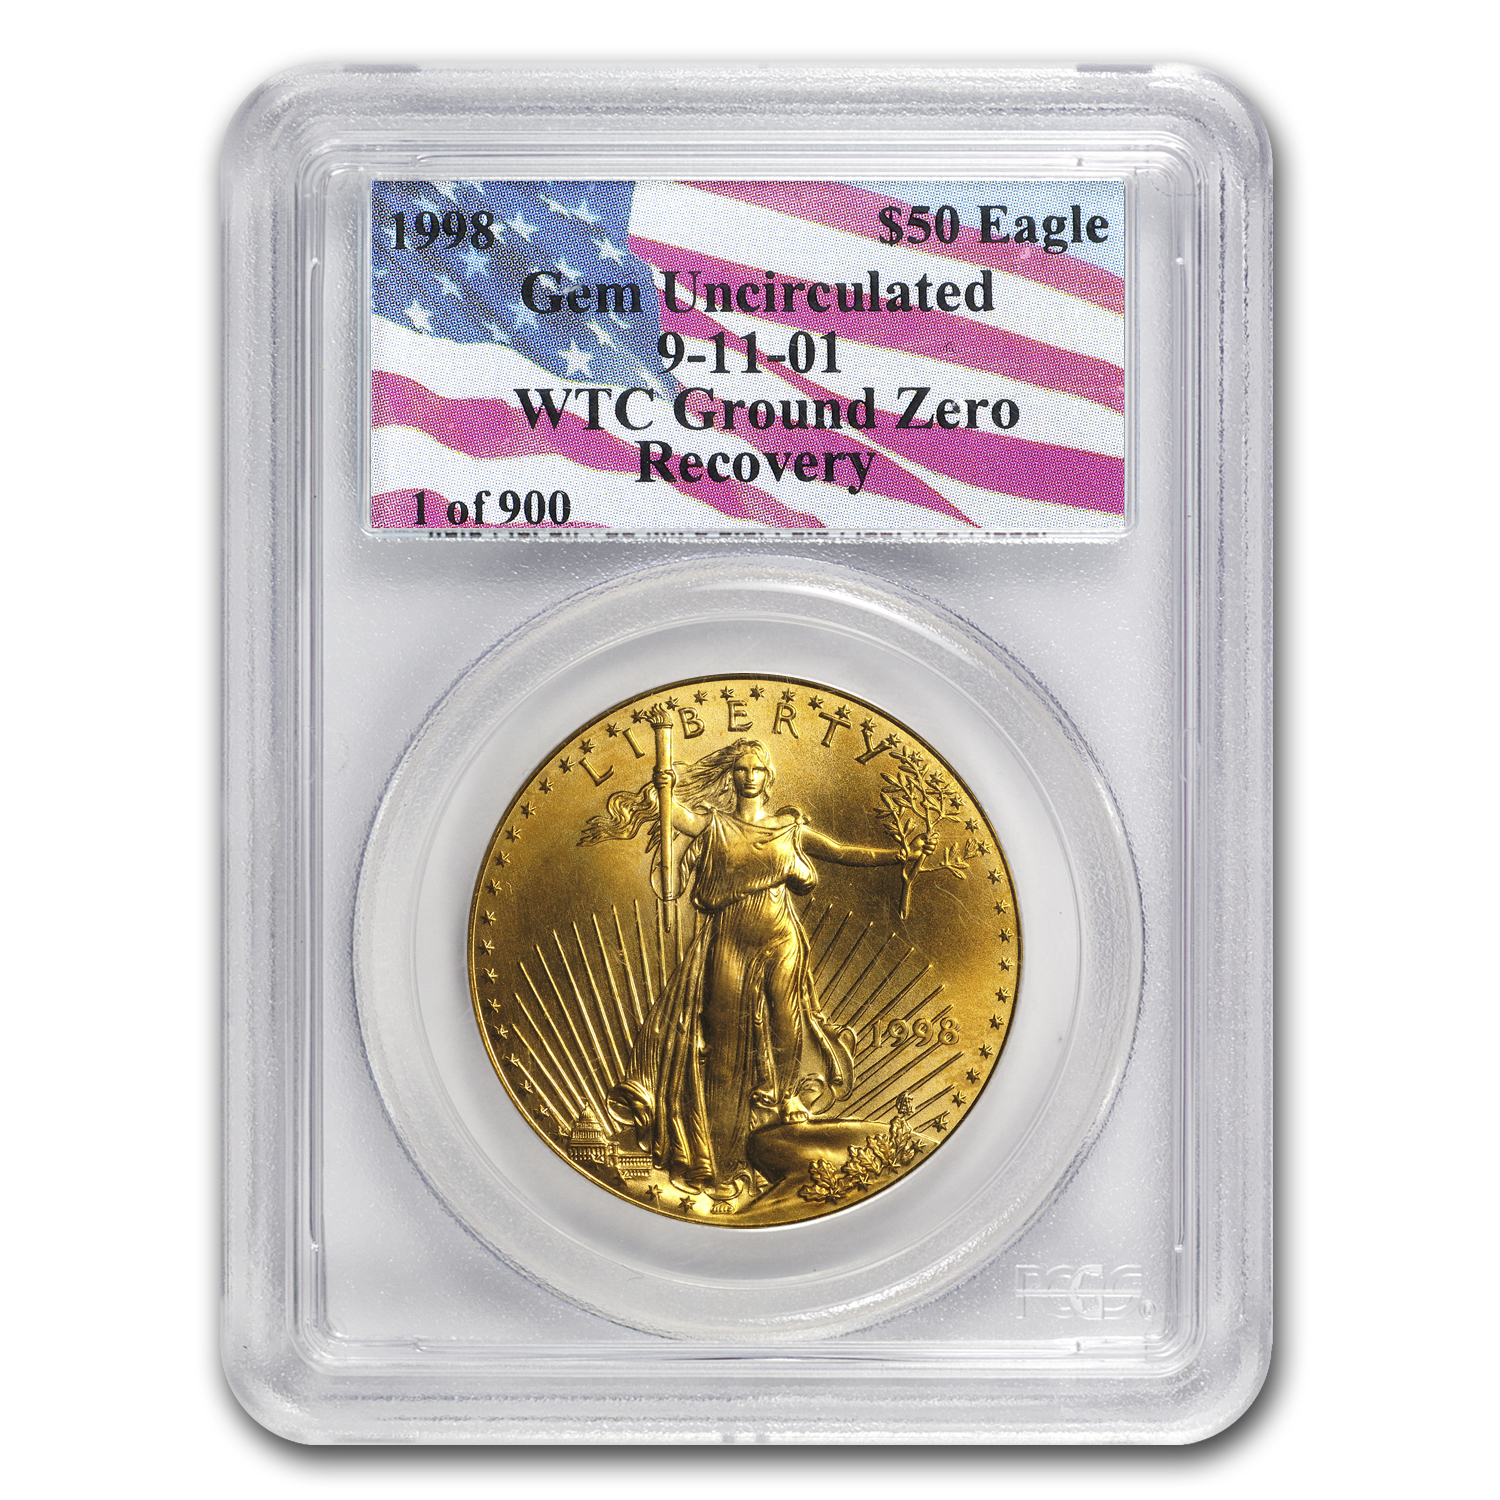 1998 1 oz Gold American Eagle Gem Unc. PCGS (World Trade Center)